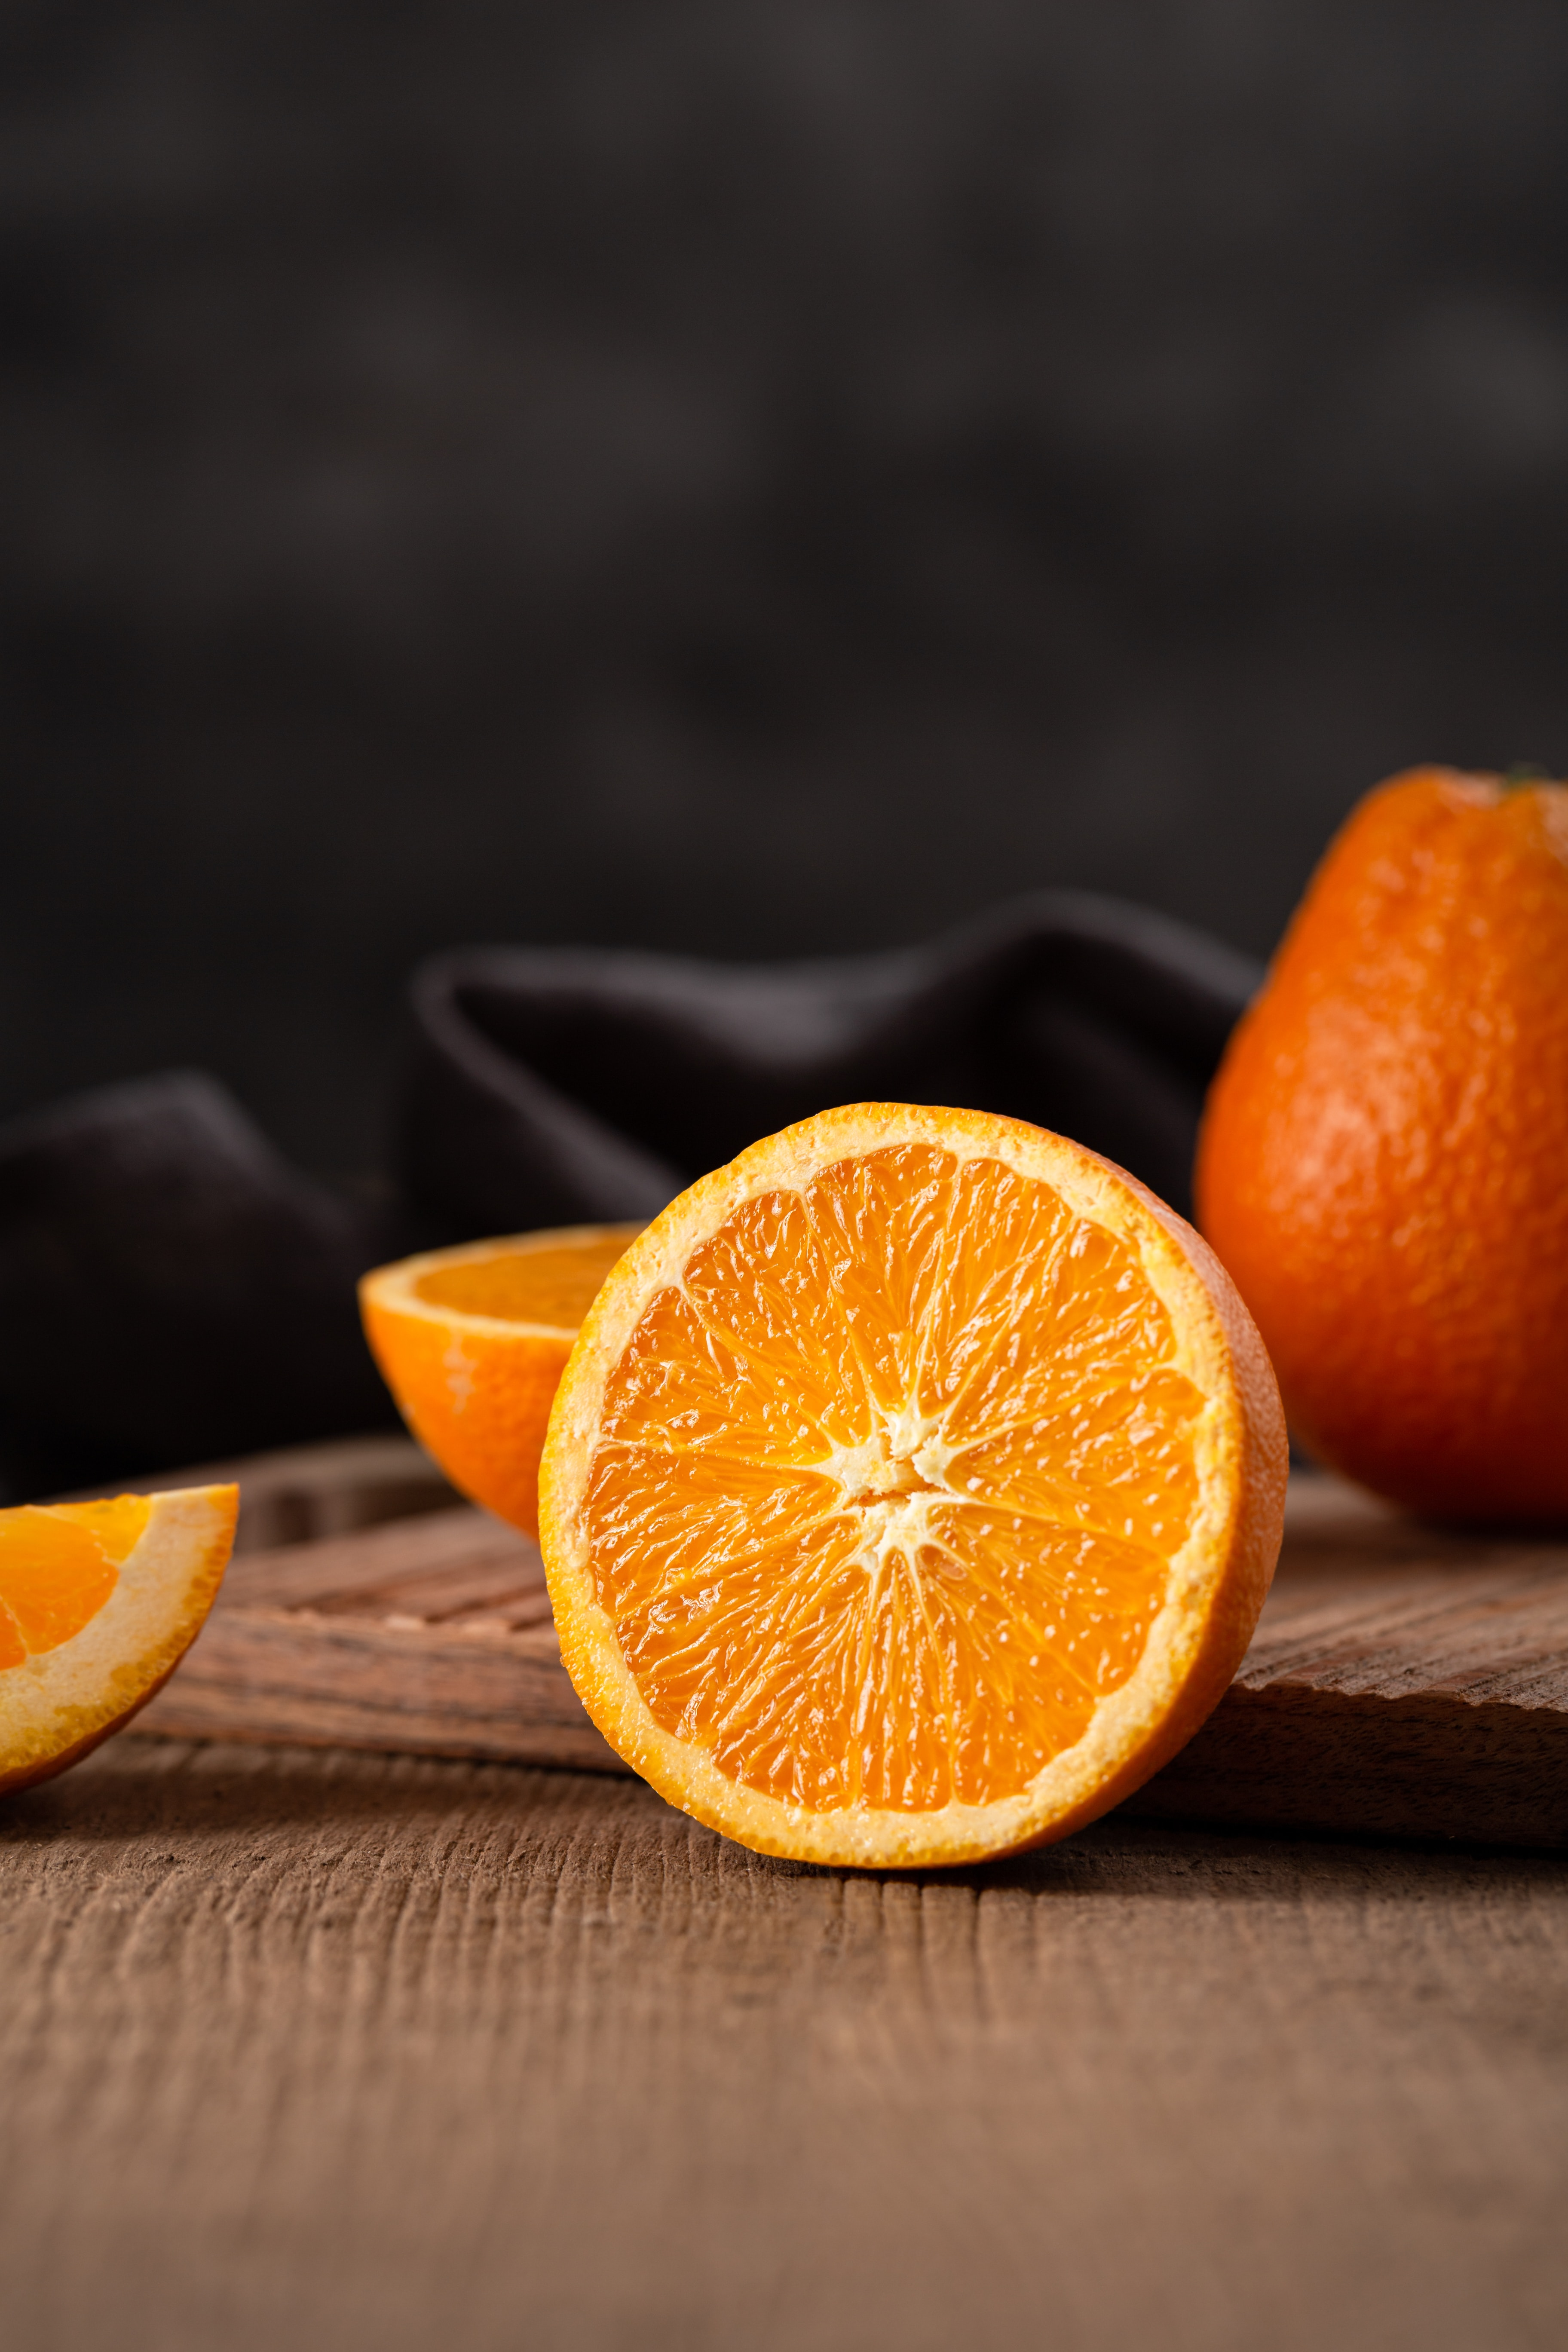 121059 download wallpaper Food, Fruit, Citrus, Lobules, Slices screensavers and pictures for free